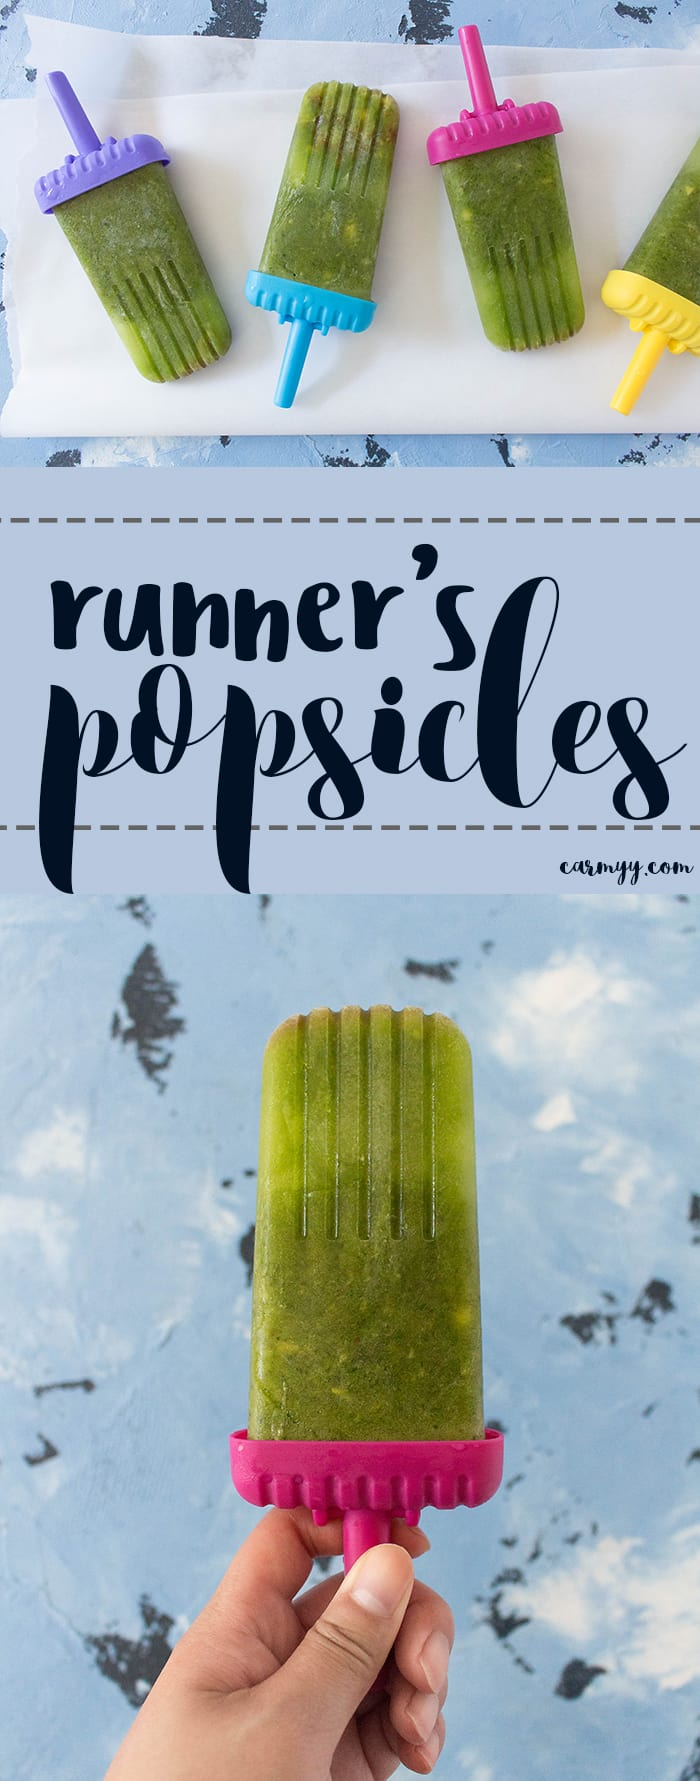 This Runner's Popsicle is the perfect popsicle for you to come home to after a hot summer run or as your pre-run fuel.